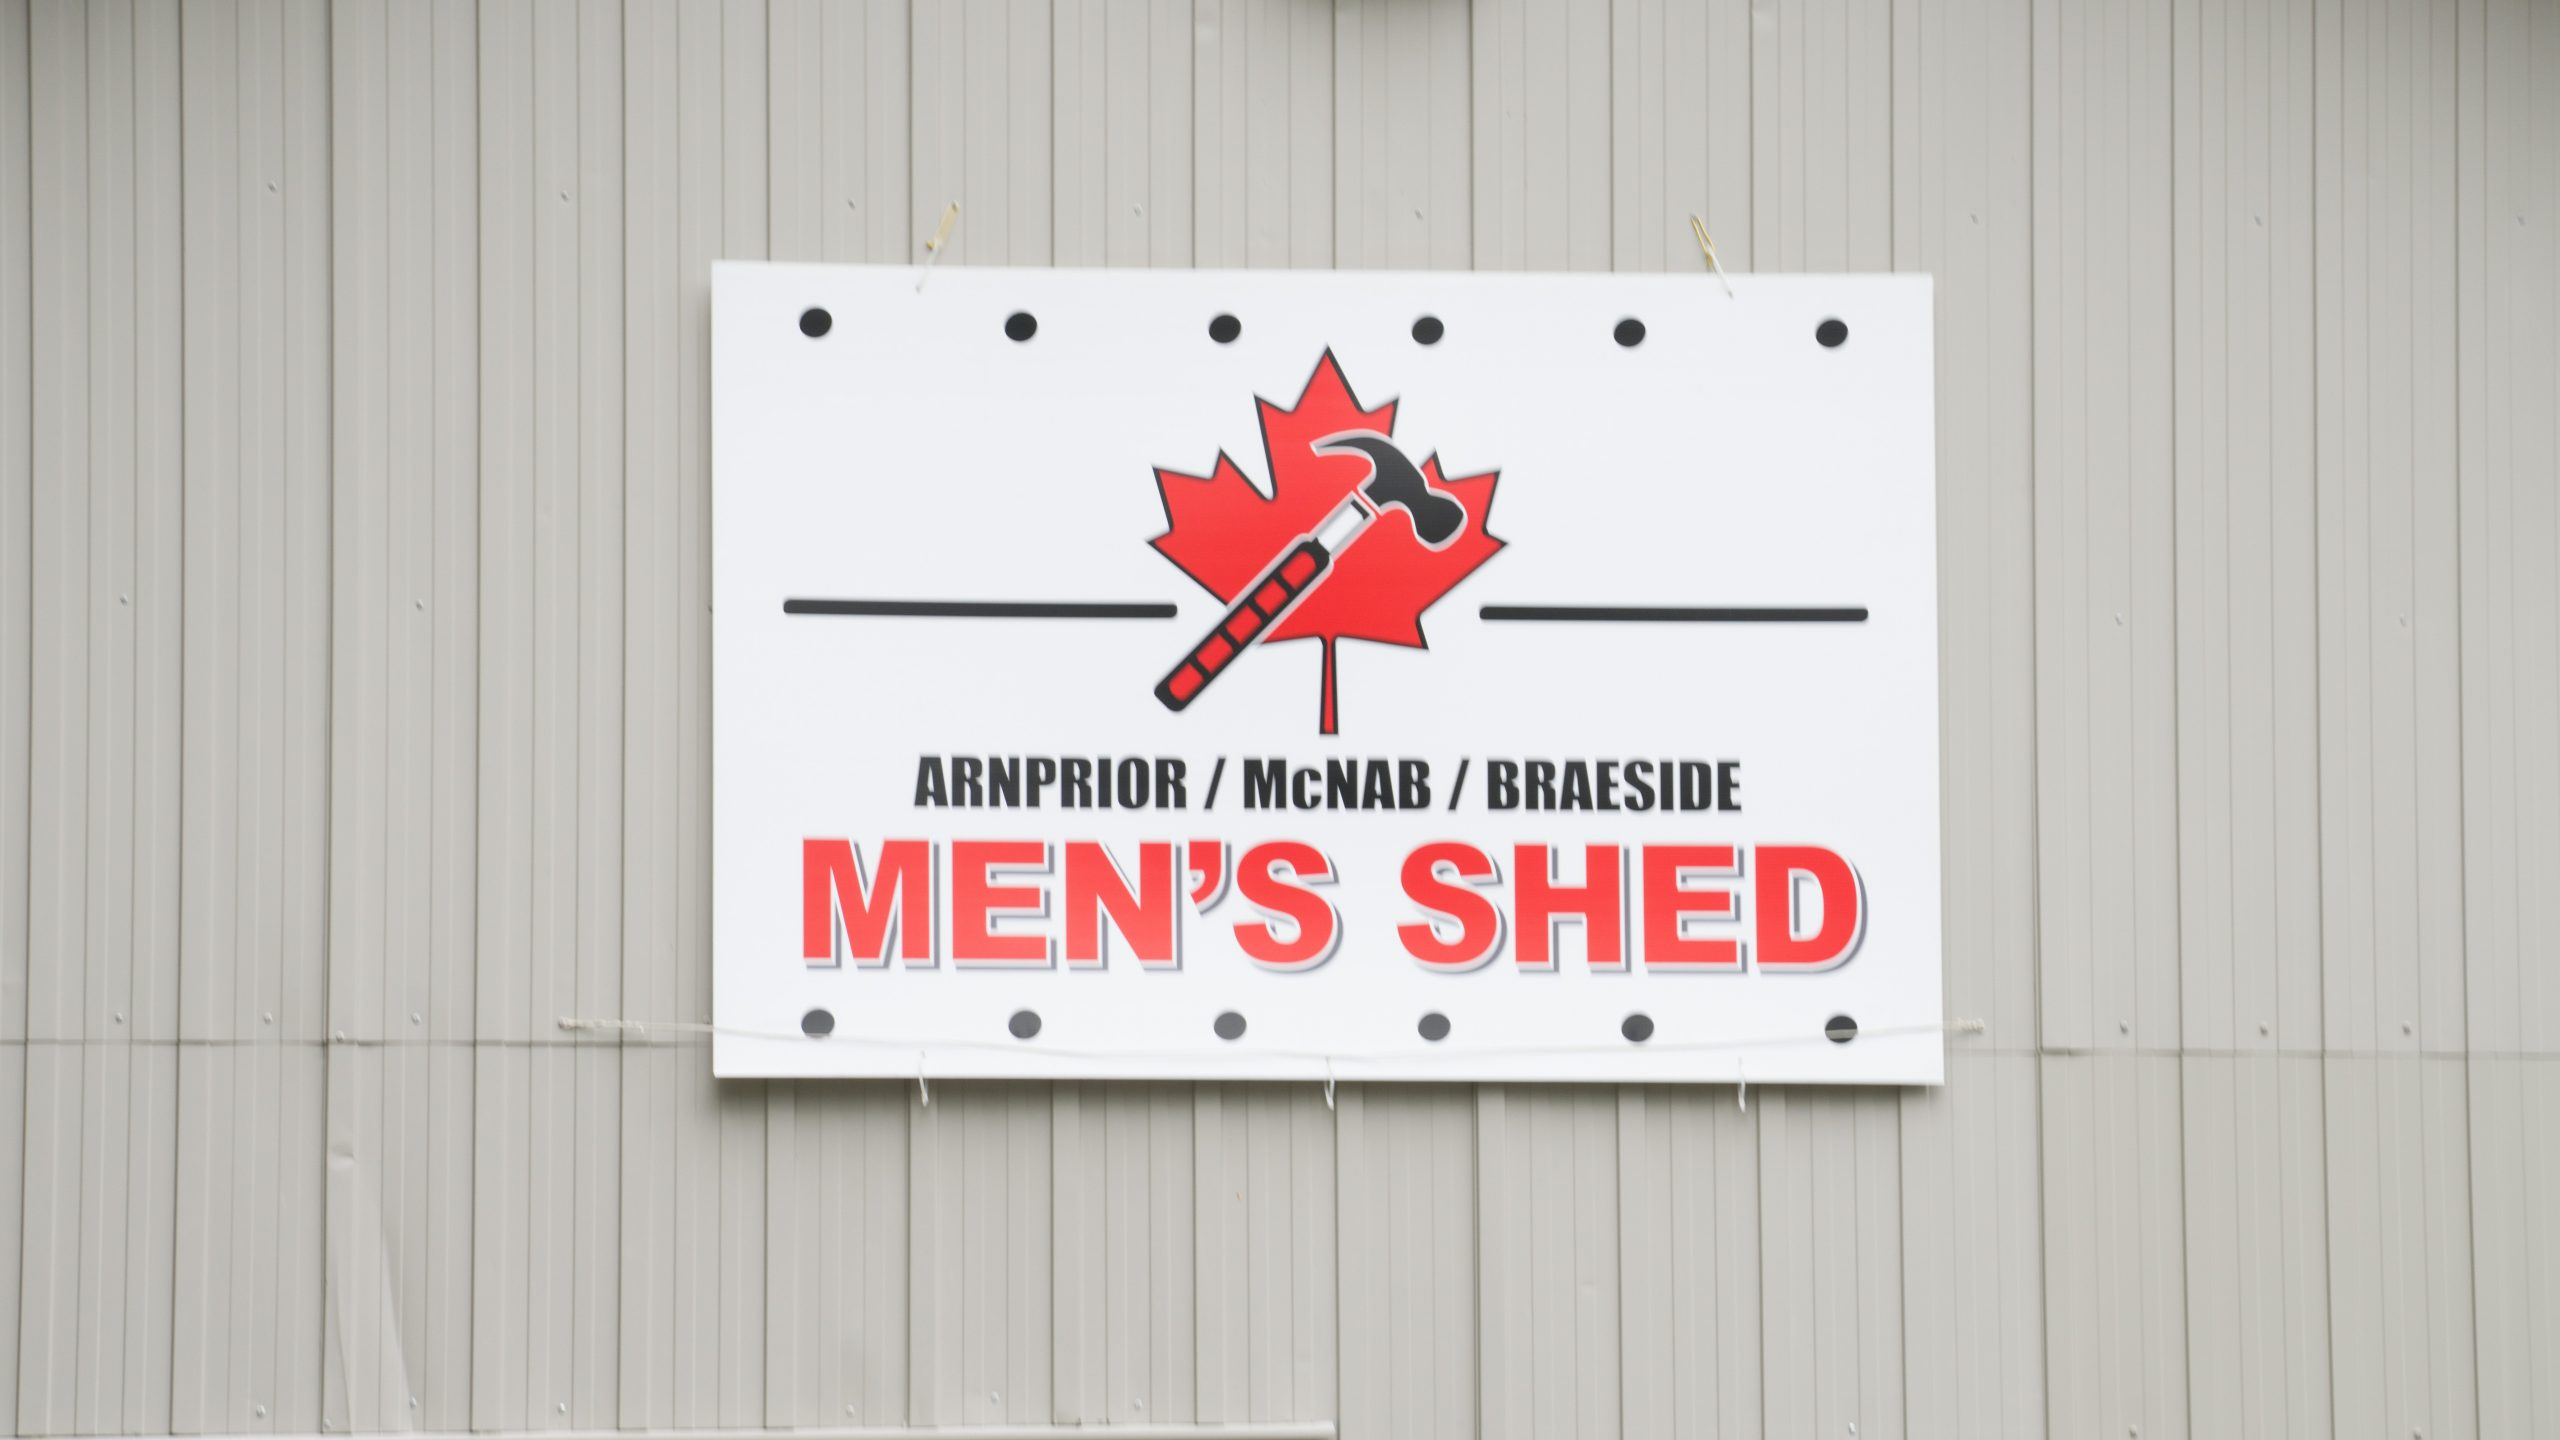 The Men's Shed